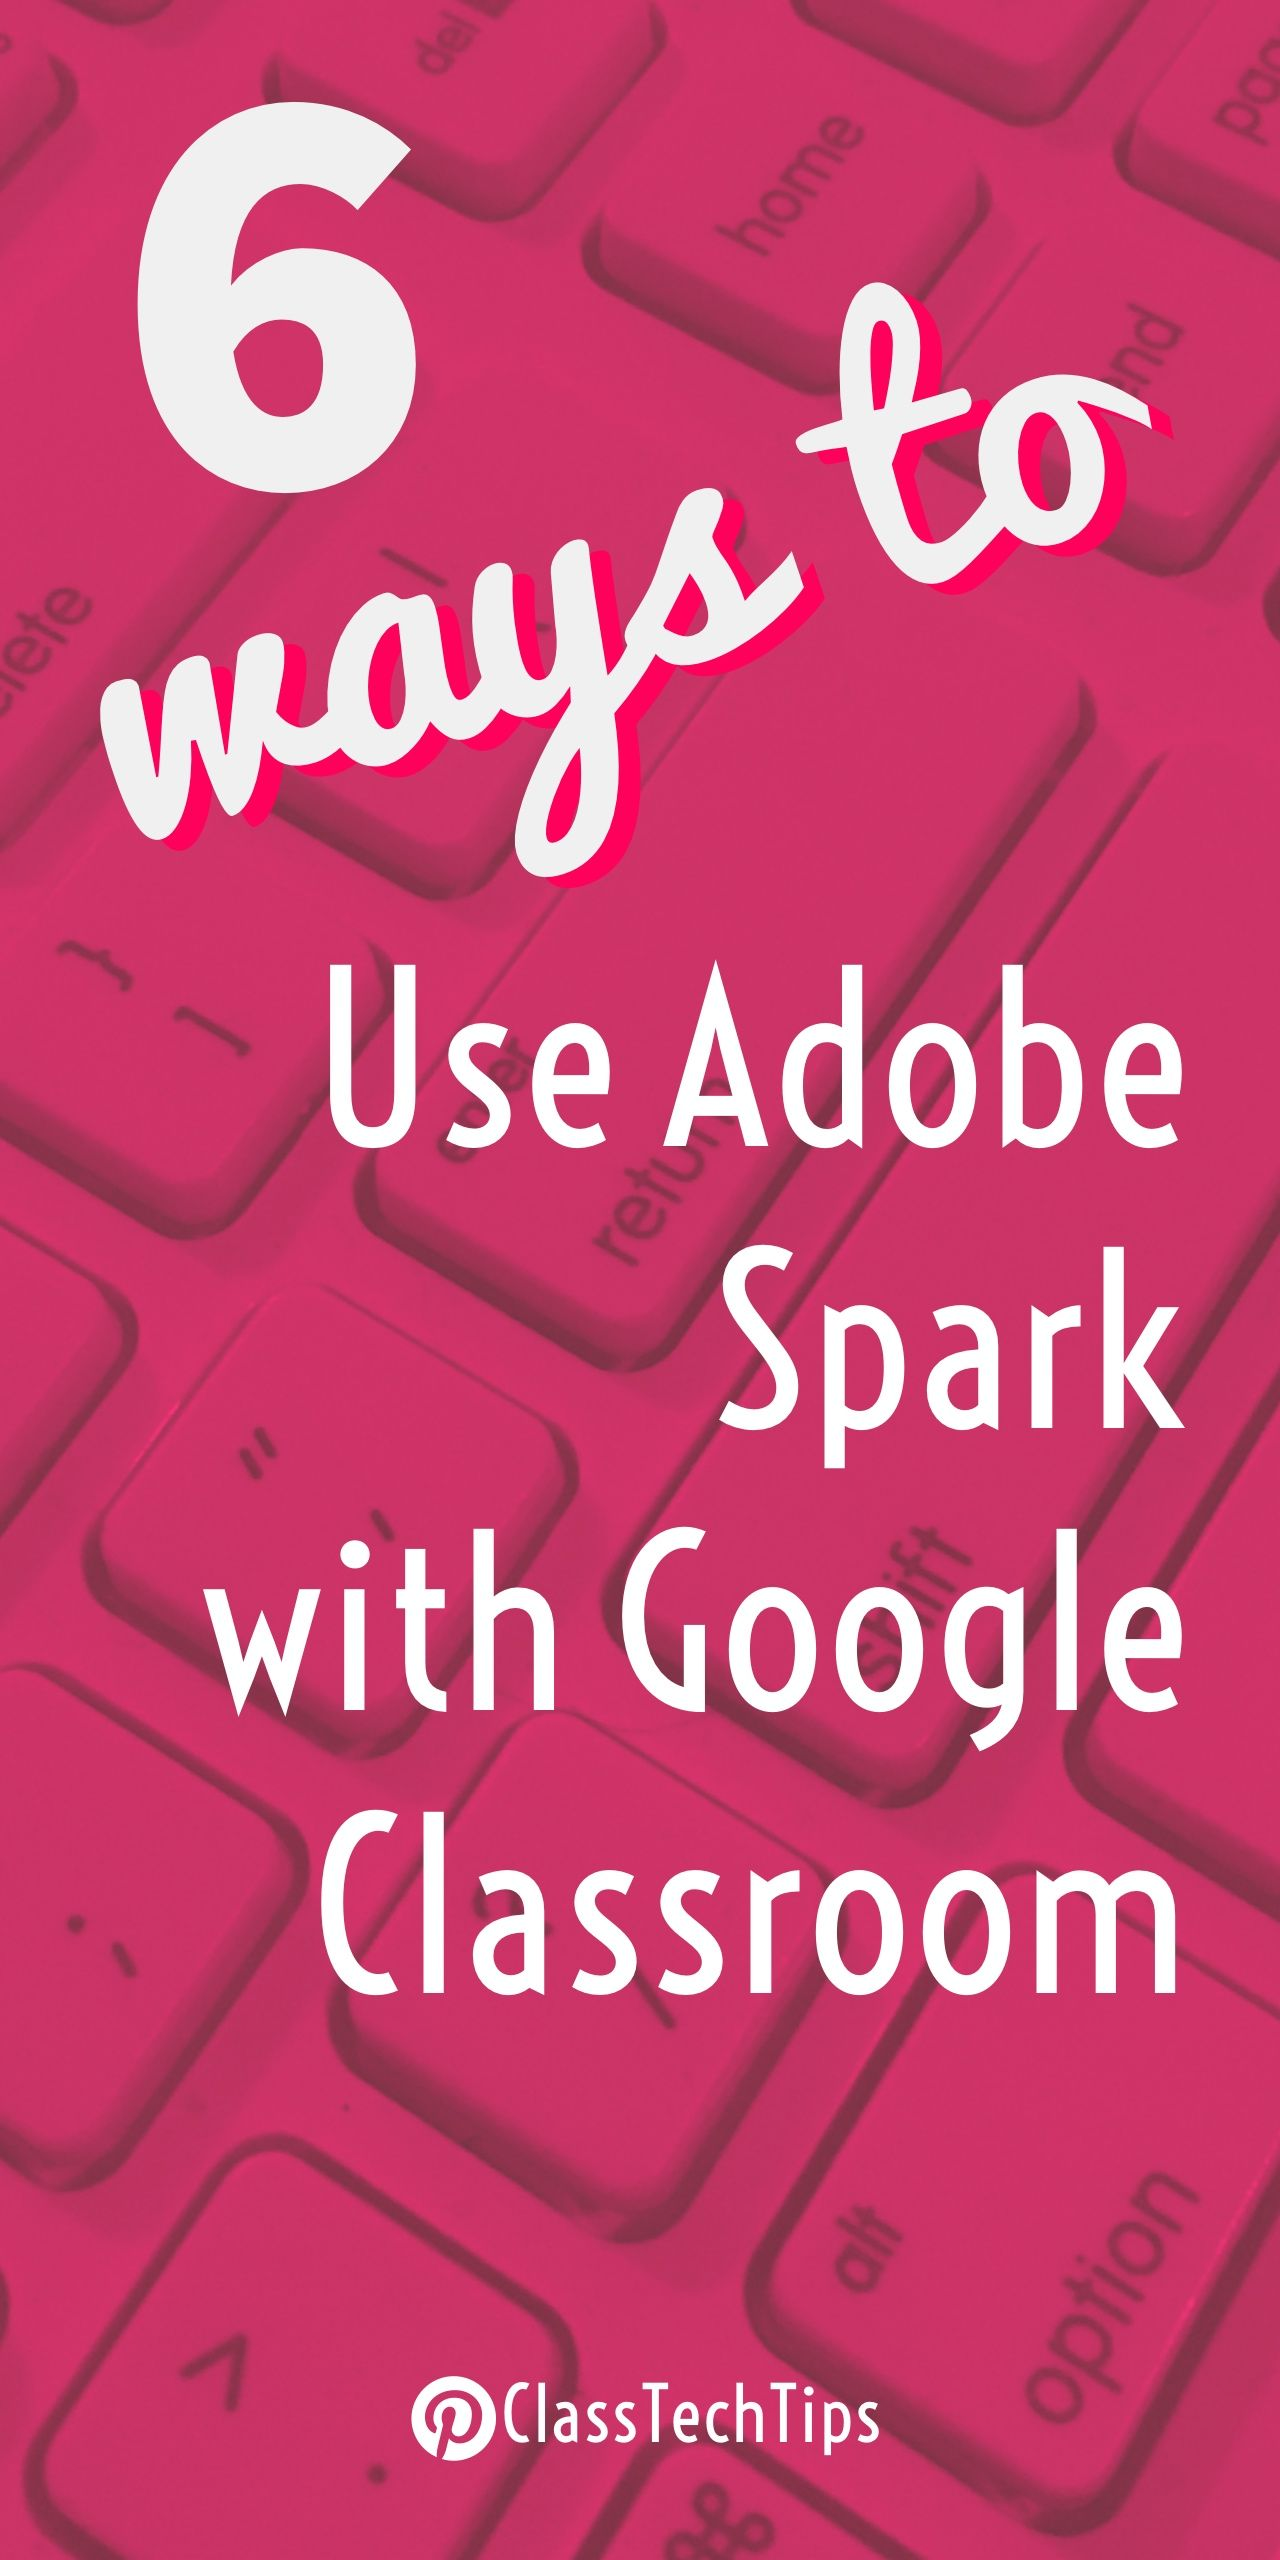 Google themes maker - 6 Ways To Use Adobe Spark With Google Classroom